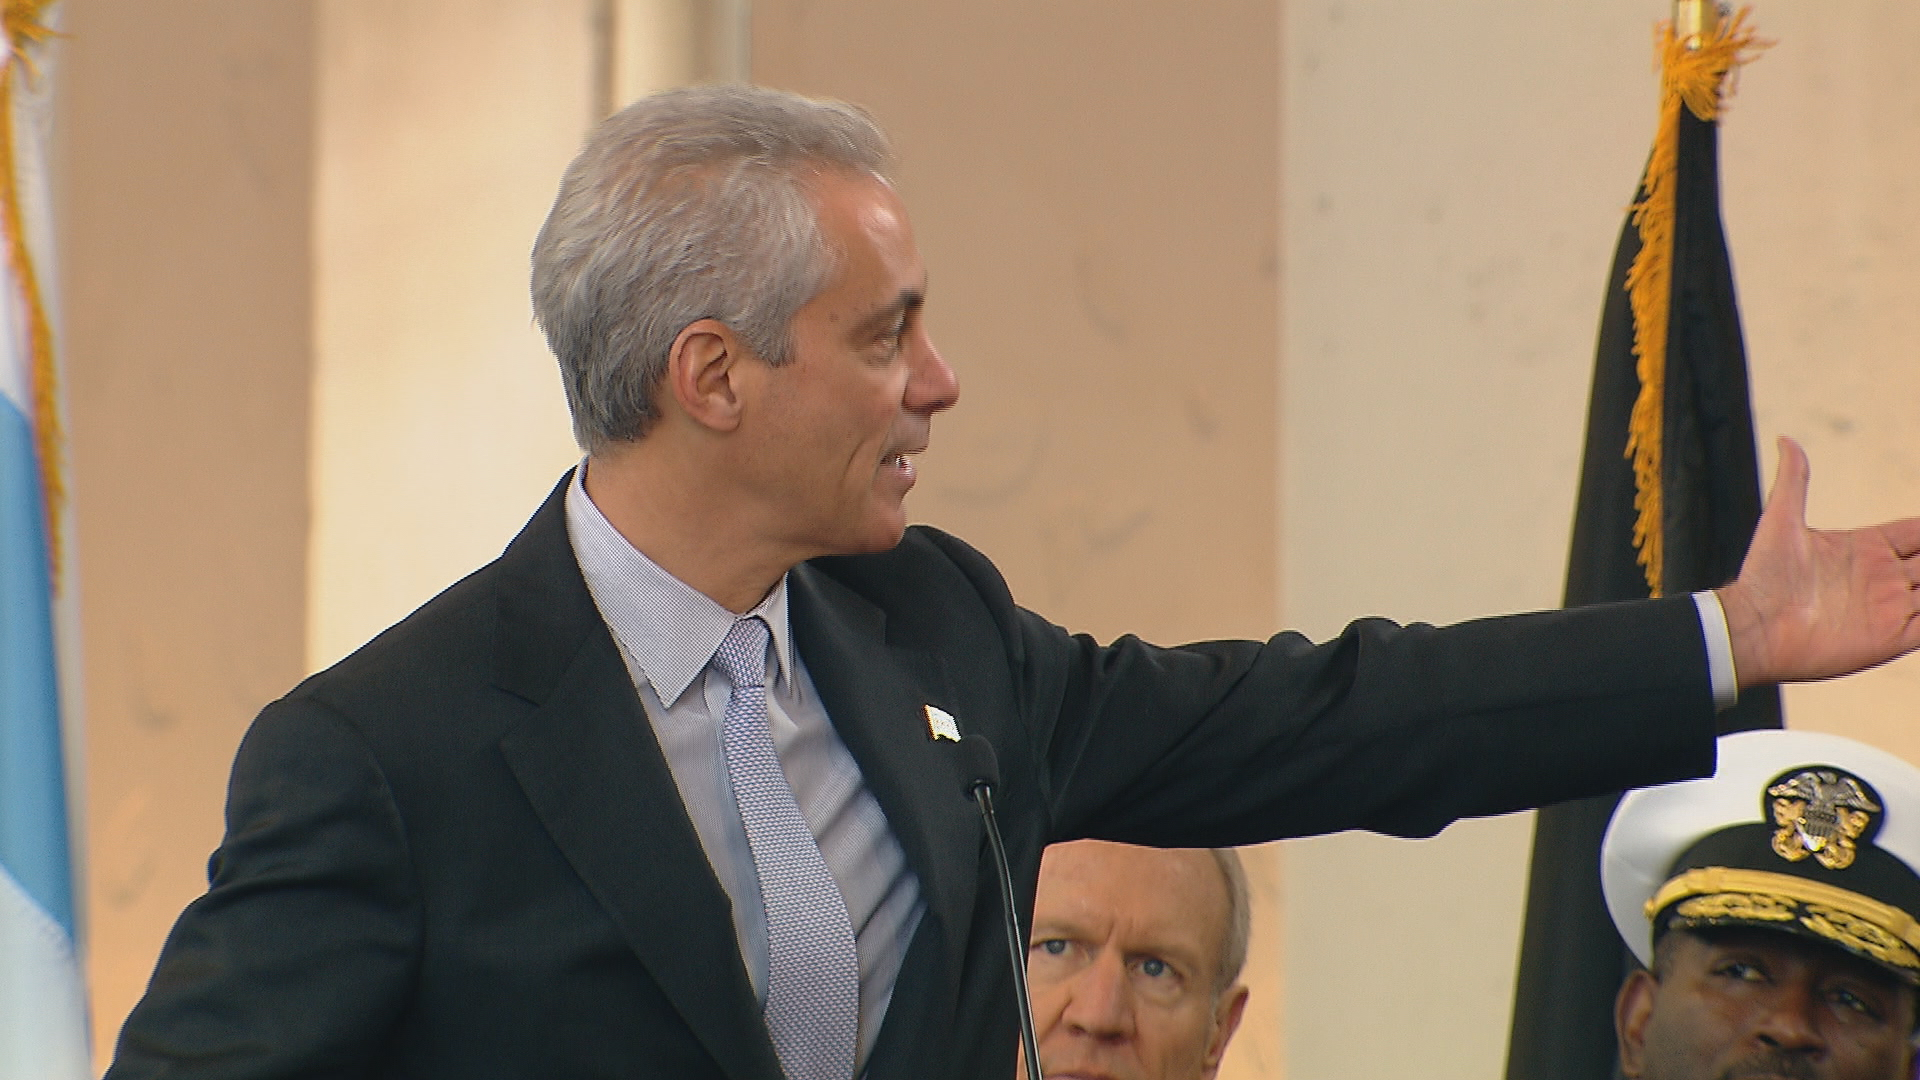 Mayor Rahm Emanuel announces increased CHA help for veterans at Wednesday's Veteran's Day ceremony at Soldier Field.